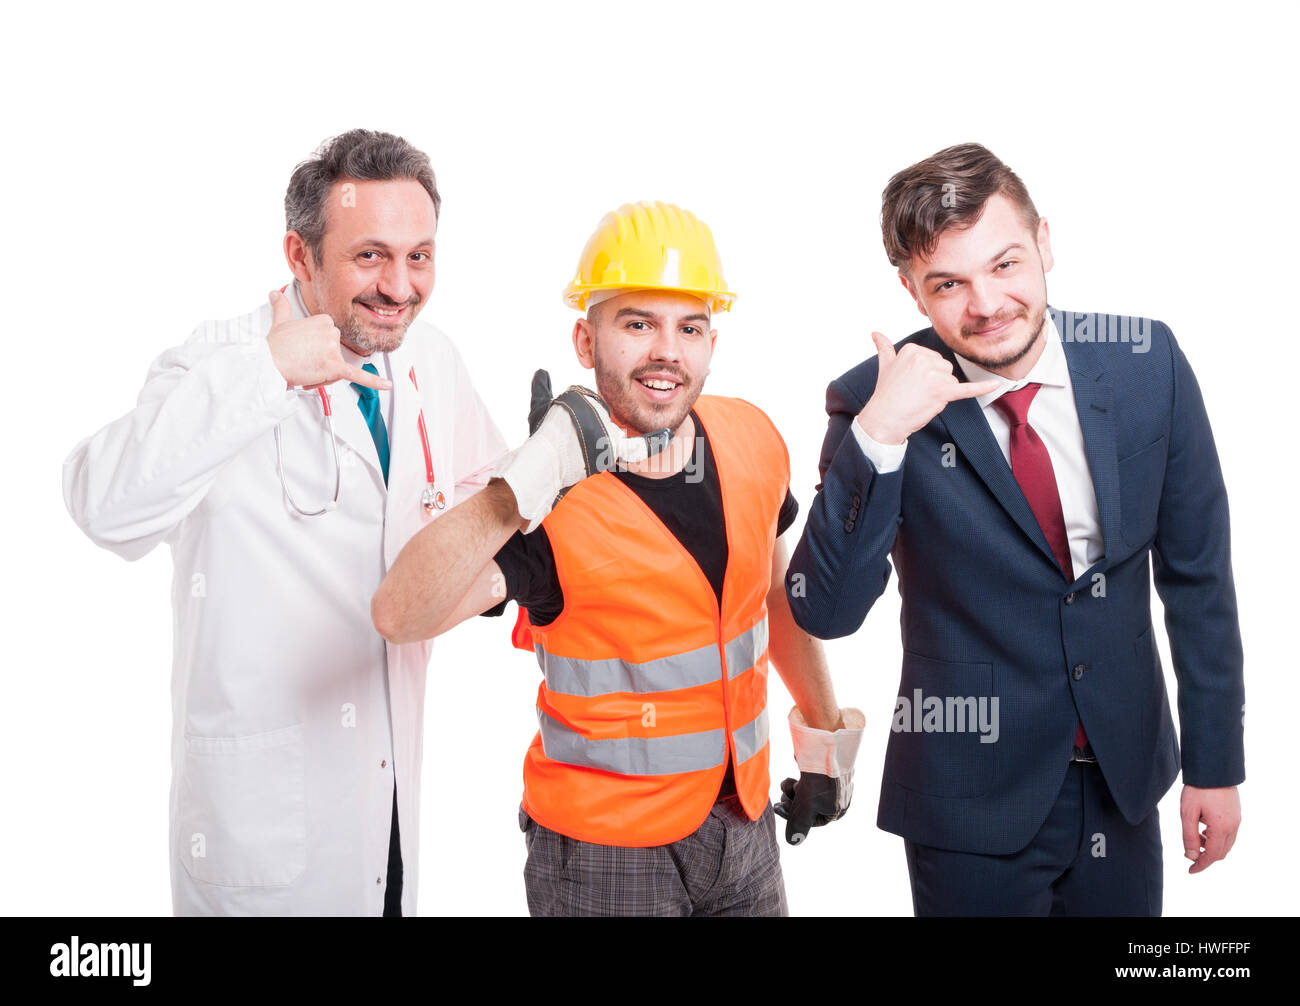 People with different jobs smiling and doing call gesture with their hands isolated on white background - Stock Image